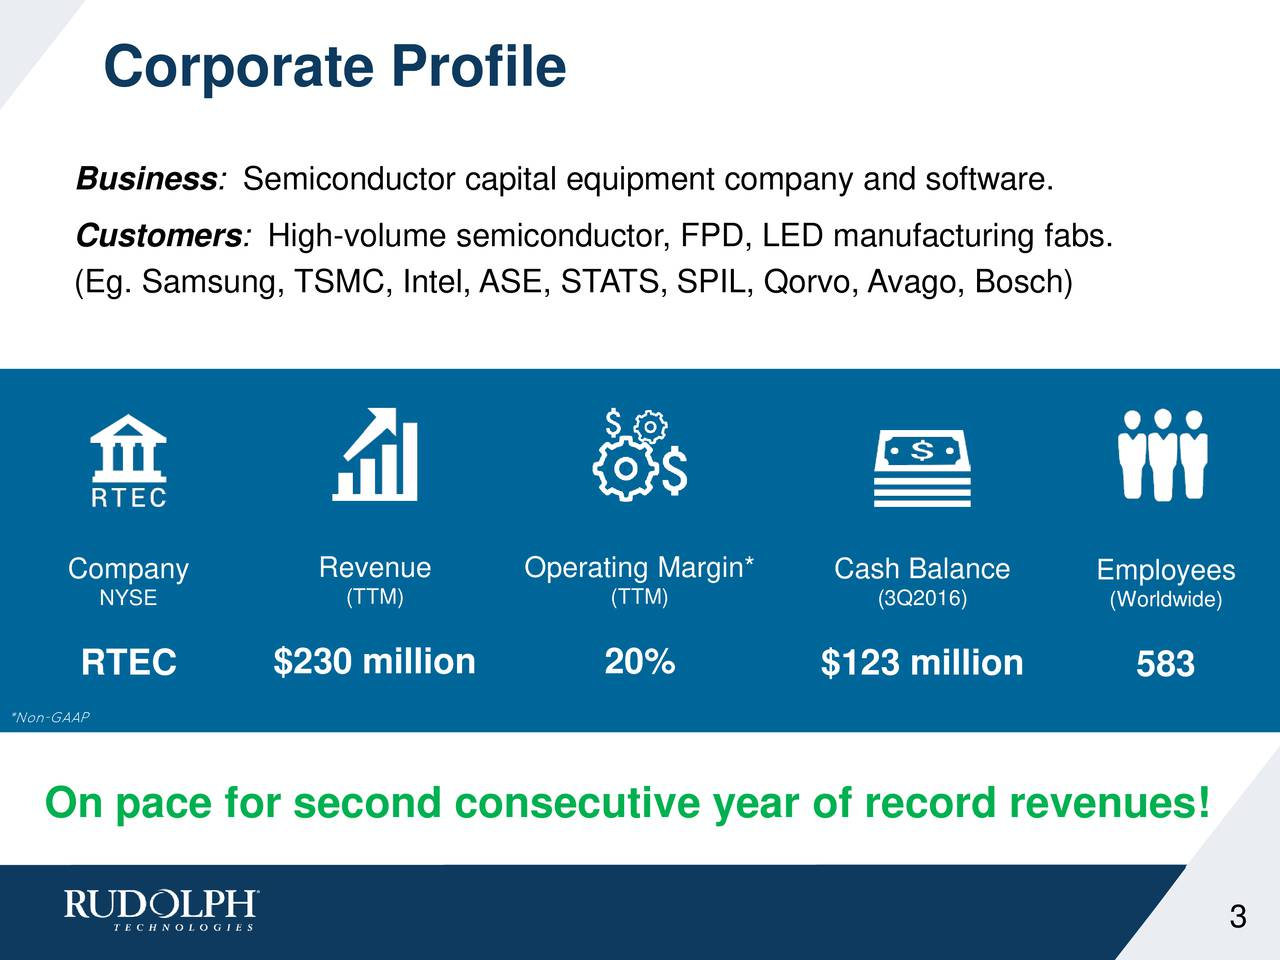 Business: Semiconductor capital equipment company and software. Customers: High-volume semiconductor, FPD, LED manufacturingfabs. (Eg. Samsung, TSMC, Intel, ASE, STATS, SPIL, Qorvo, Avago, Bosch) Company Revenue Operating Margin* Cash Balance Employees NYSE (TTM) (TTM) (3Q2016) (Worldwide) RTEC $230 million 20% $123 million 583 *Non-GAAP On pace for second consecutive year of record revenues! 3